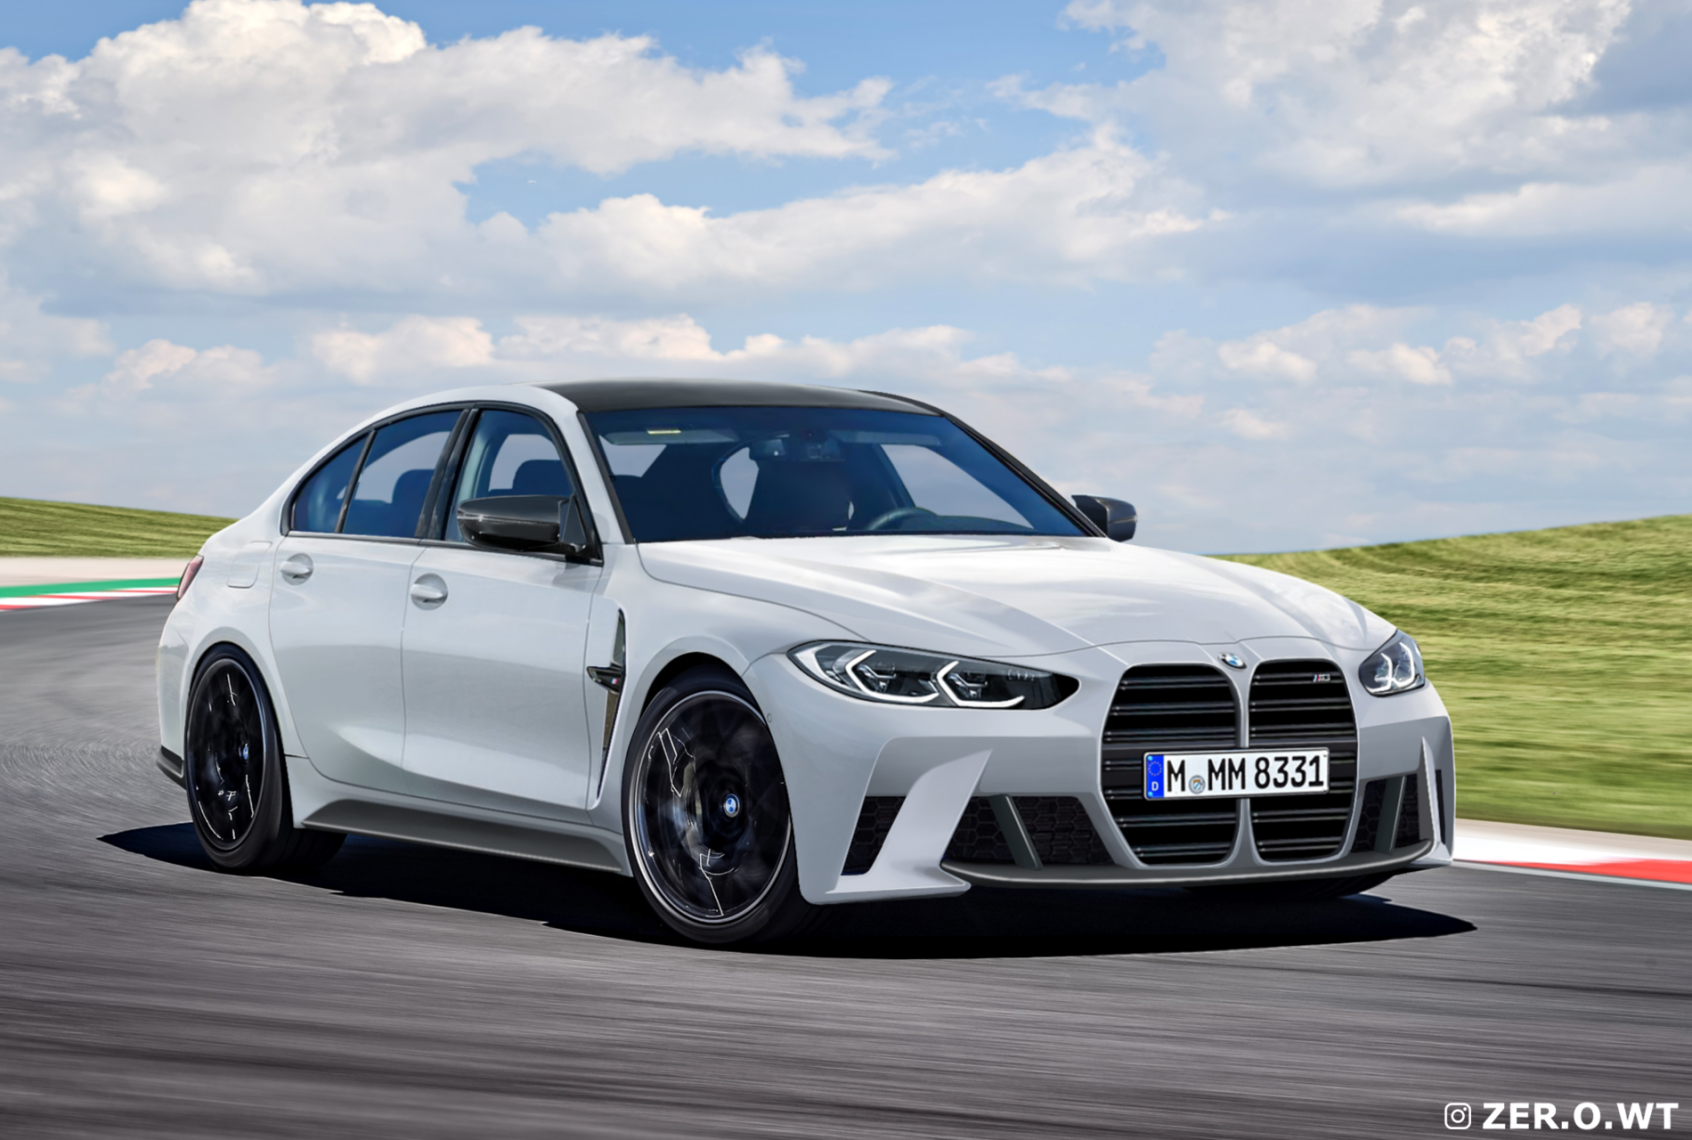 2021 BMW M3 Sedan photoshop